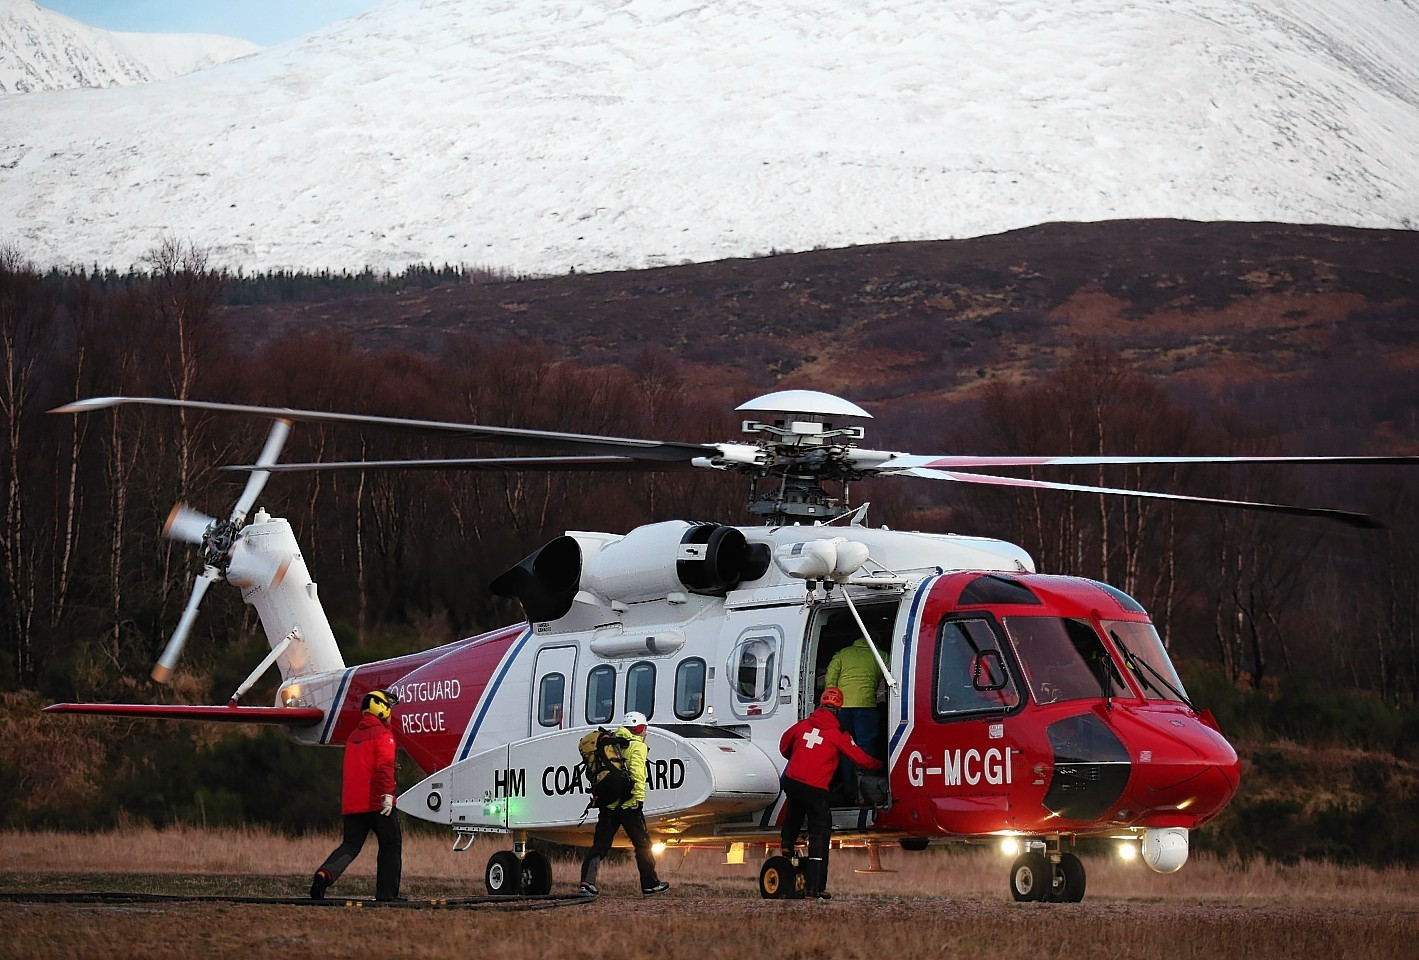 Mountain rescue volunteers are on call 365 days a year